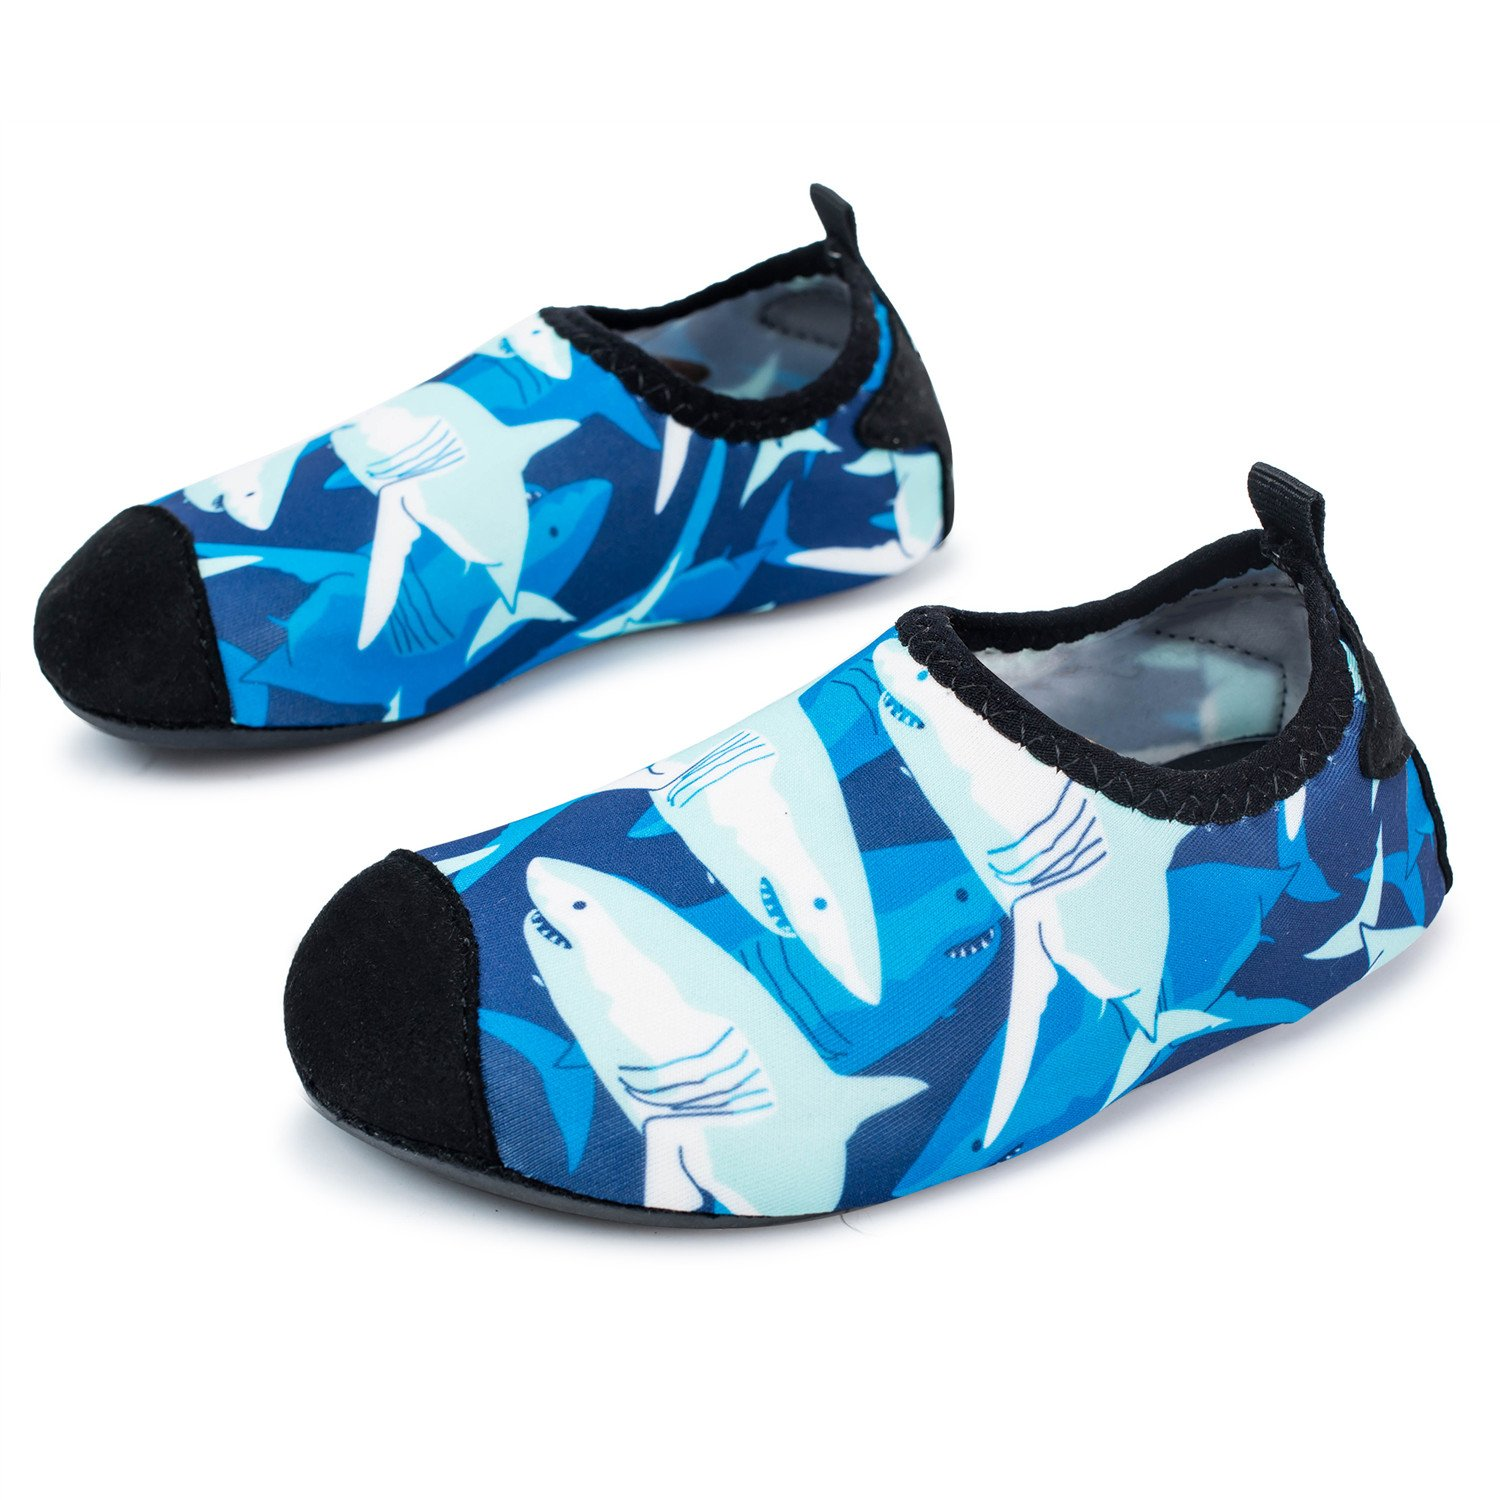 L-RUN Kids Water Shoes Boys Girls Swim Shoes Barefoot Aqua Sock Shark 9.5-10=EU26-27